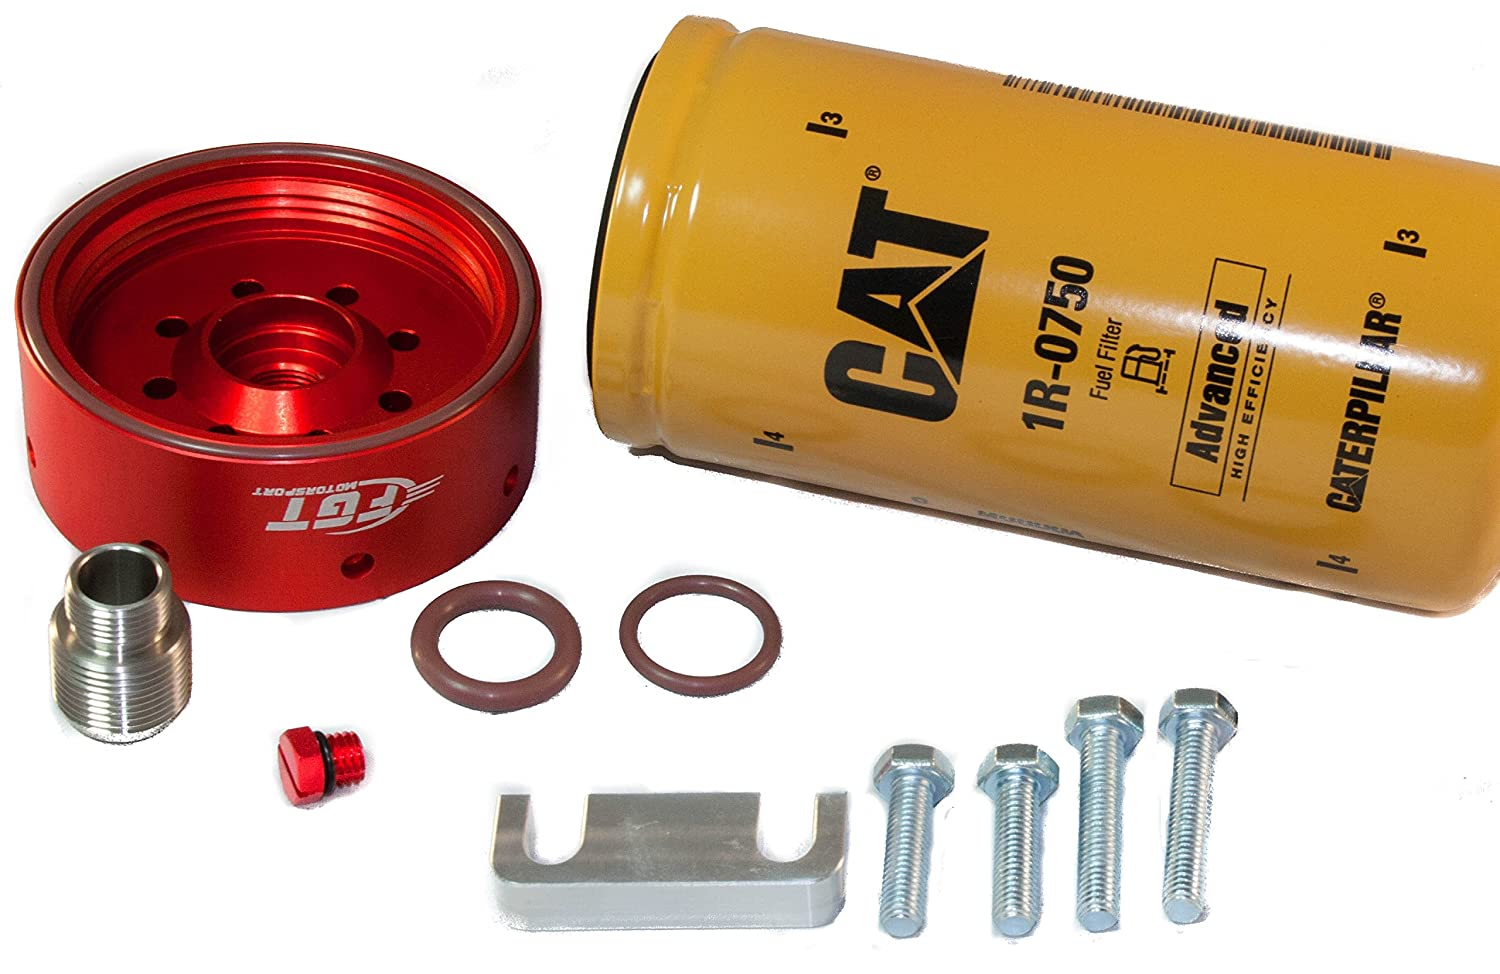 Cat Fuel Filter Adapter Conversion Kit For 2001 2016 1986 F250 Diesel Chevy Gmc Duramax Includes Bonus Billet Bleeder By Fgt Motorsport Automotive